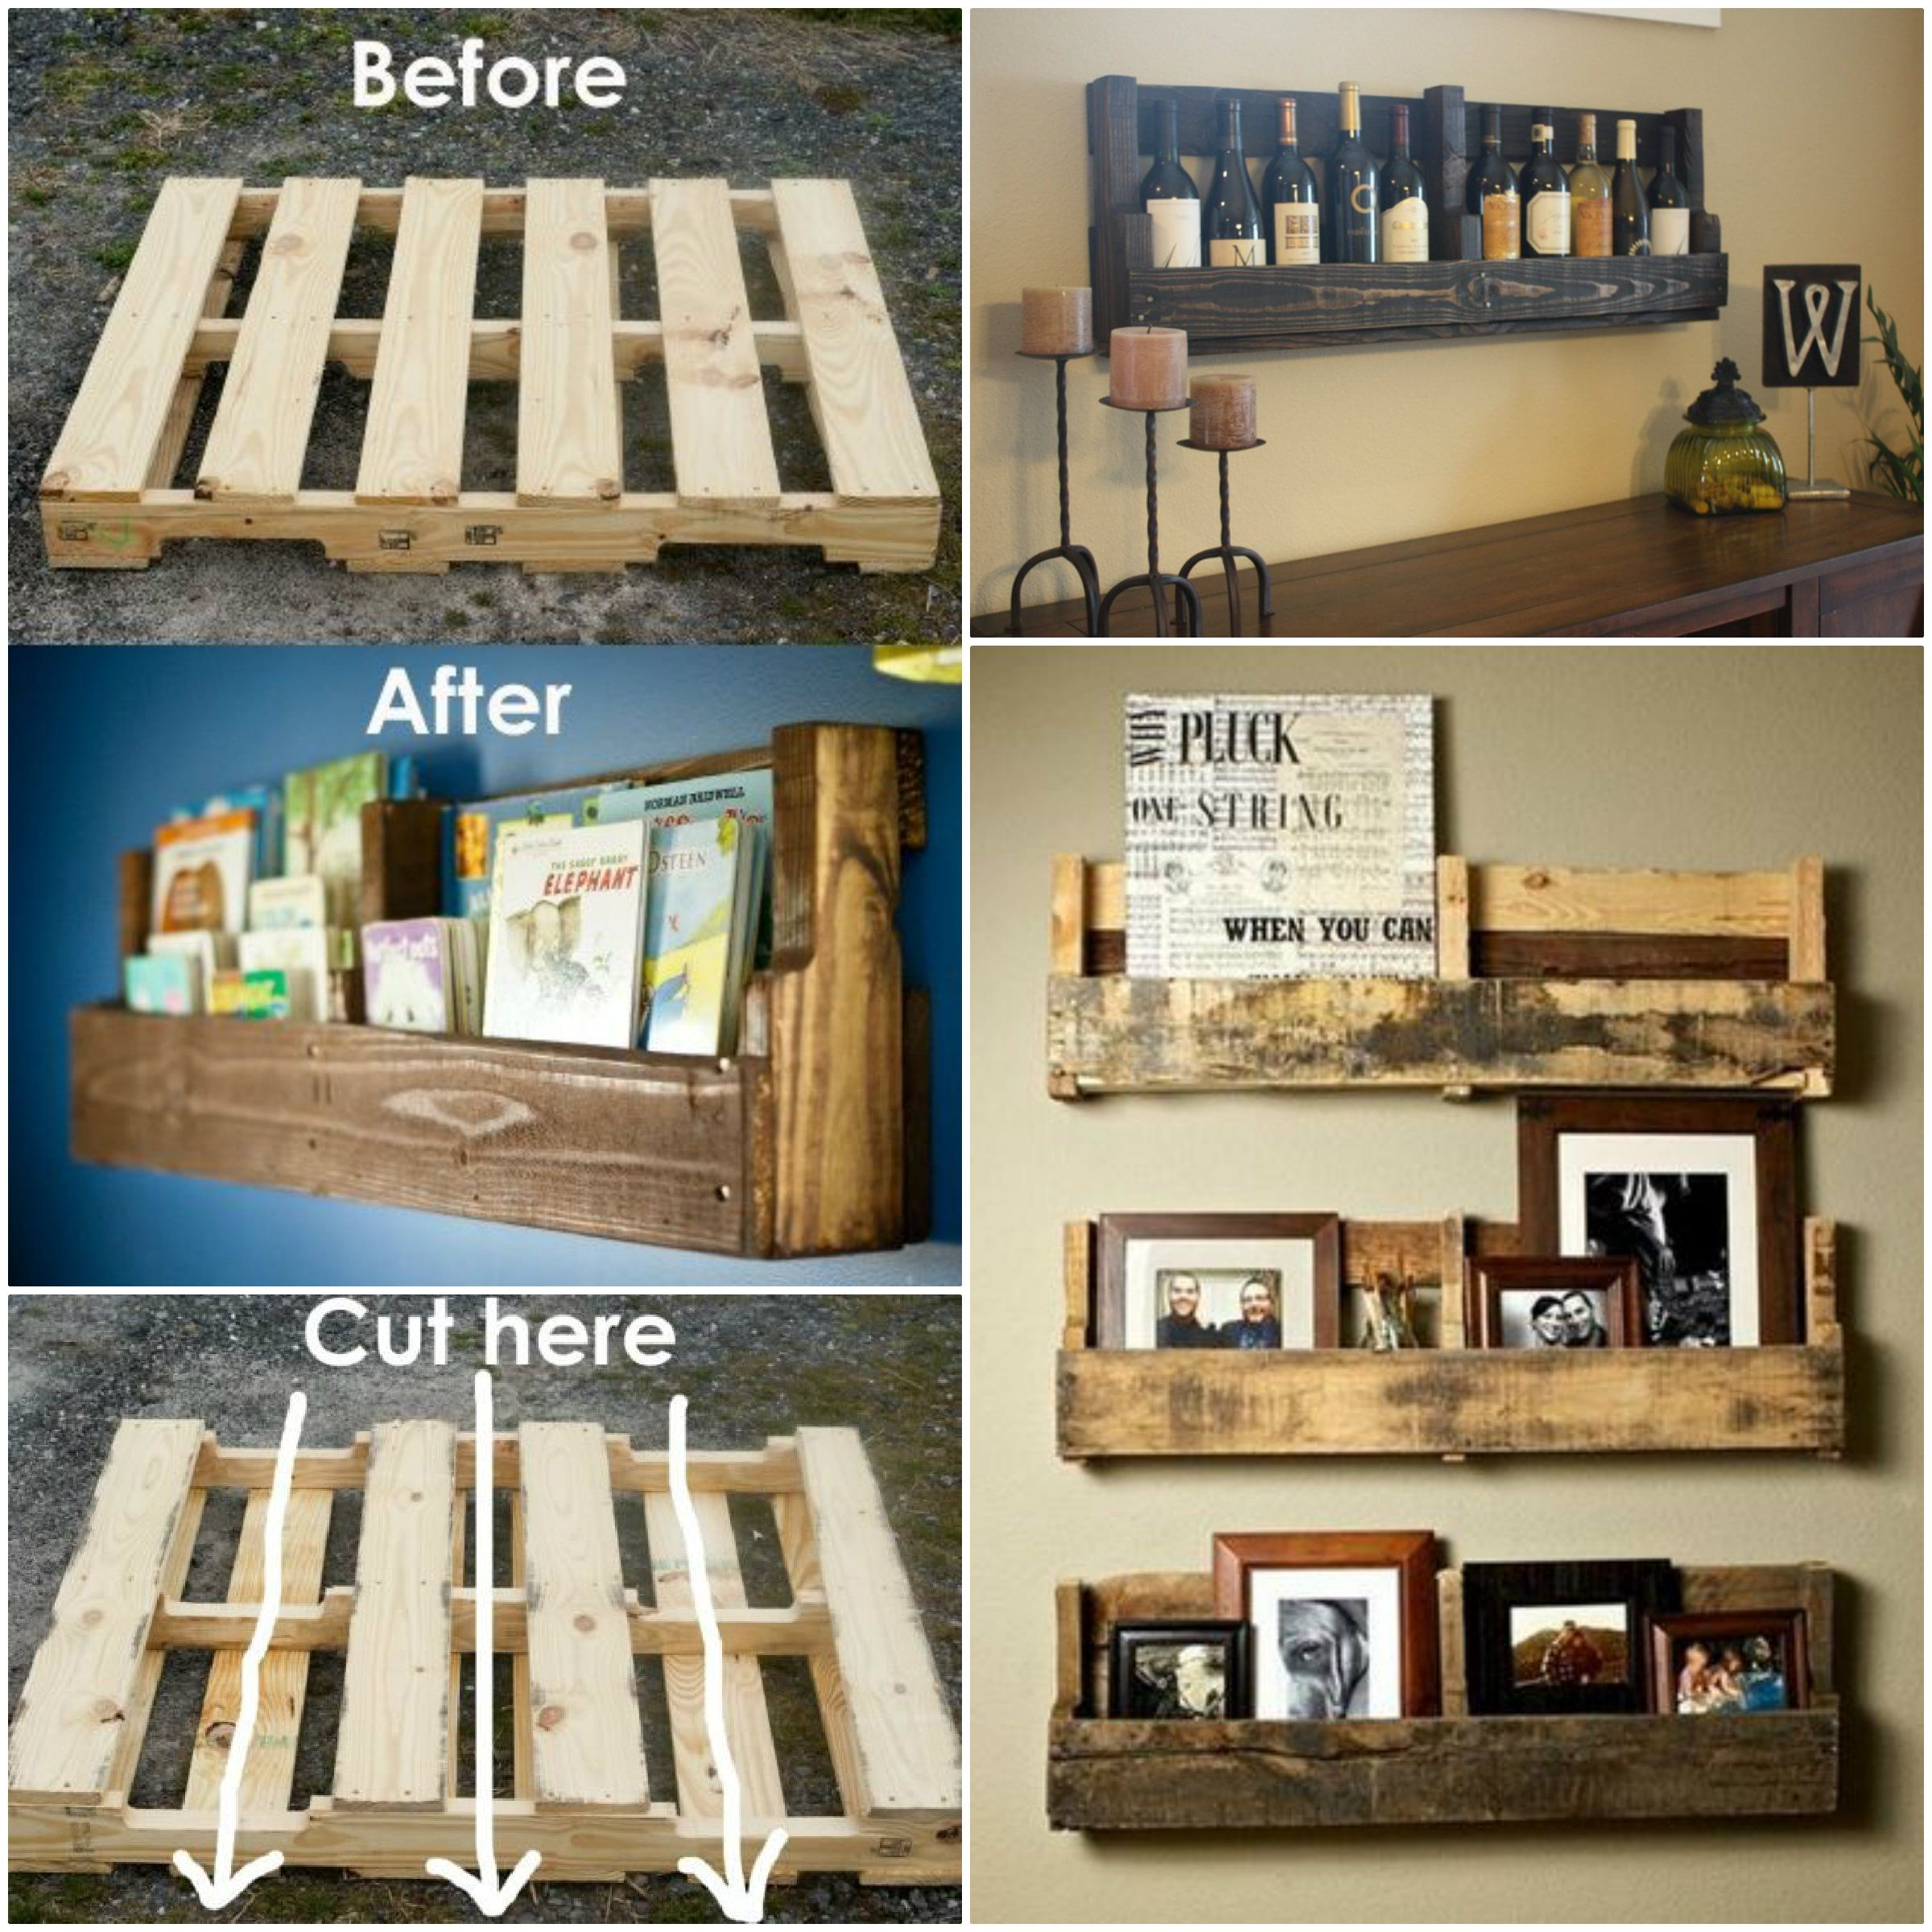 Diy Einrichtungsideen Pallet Shelf Ideas An Easy Diy Video Tutorial | The Whoot | Diy Pallet Projects, Pallet Diy, Furniture Projects